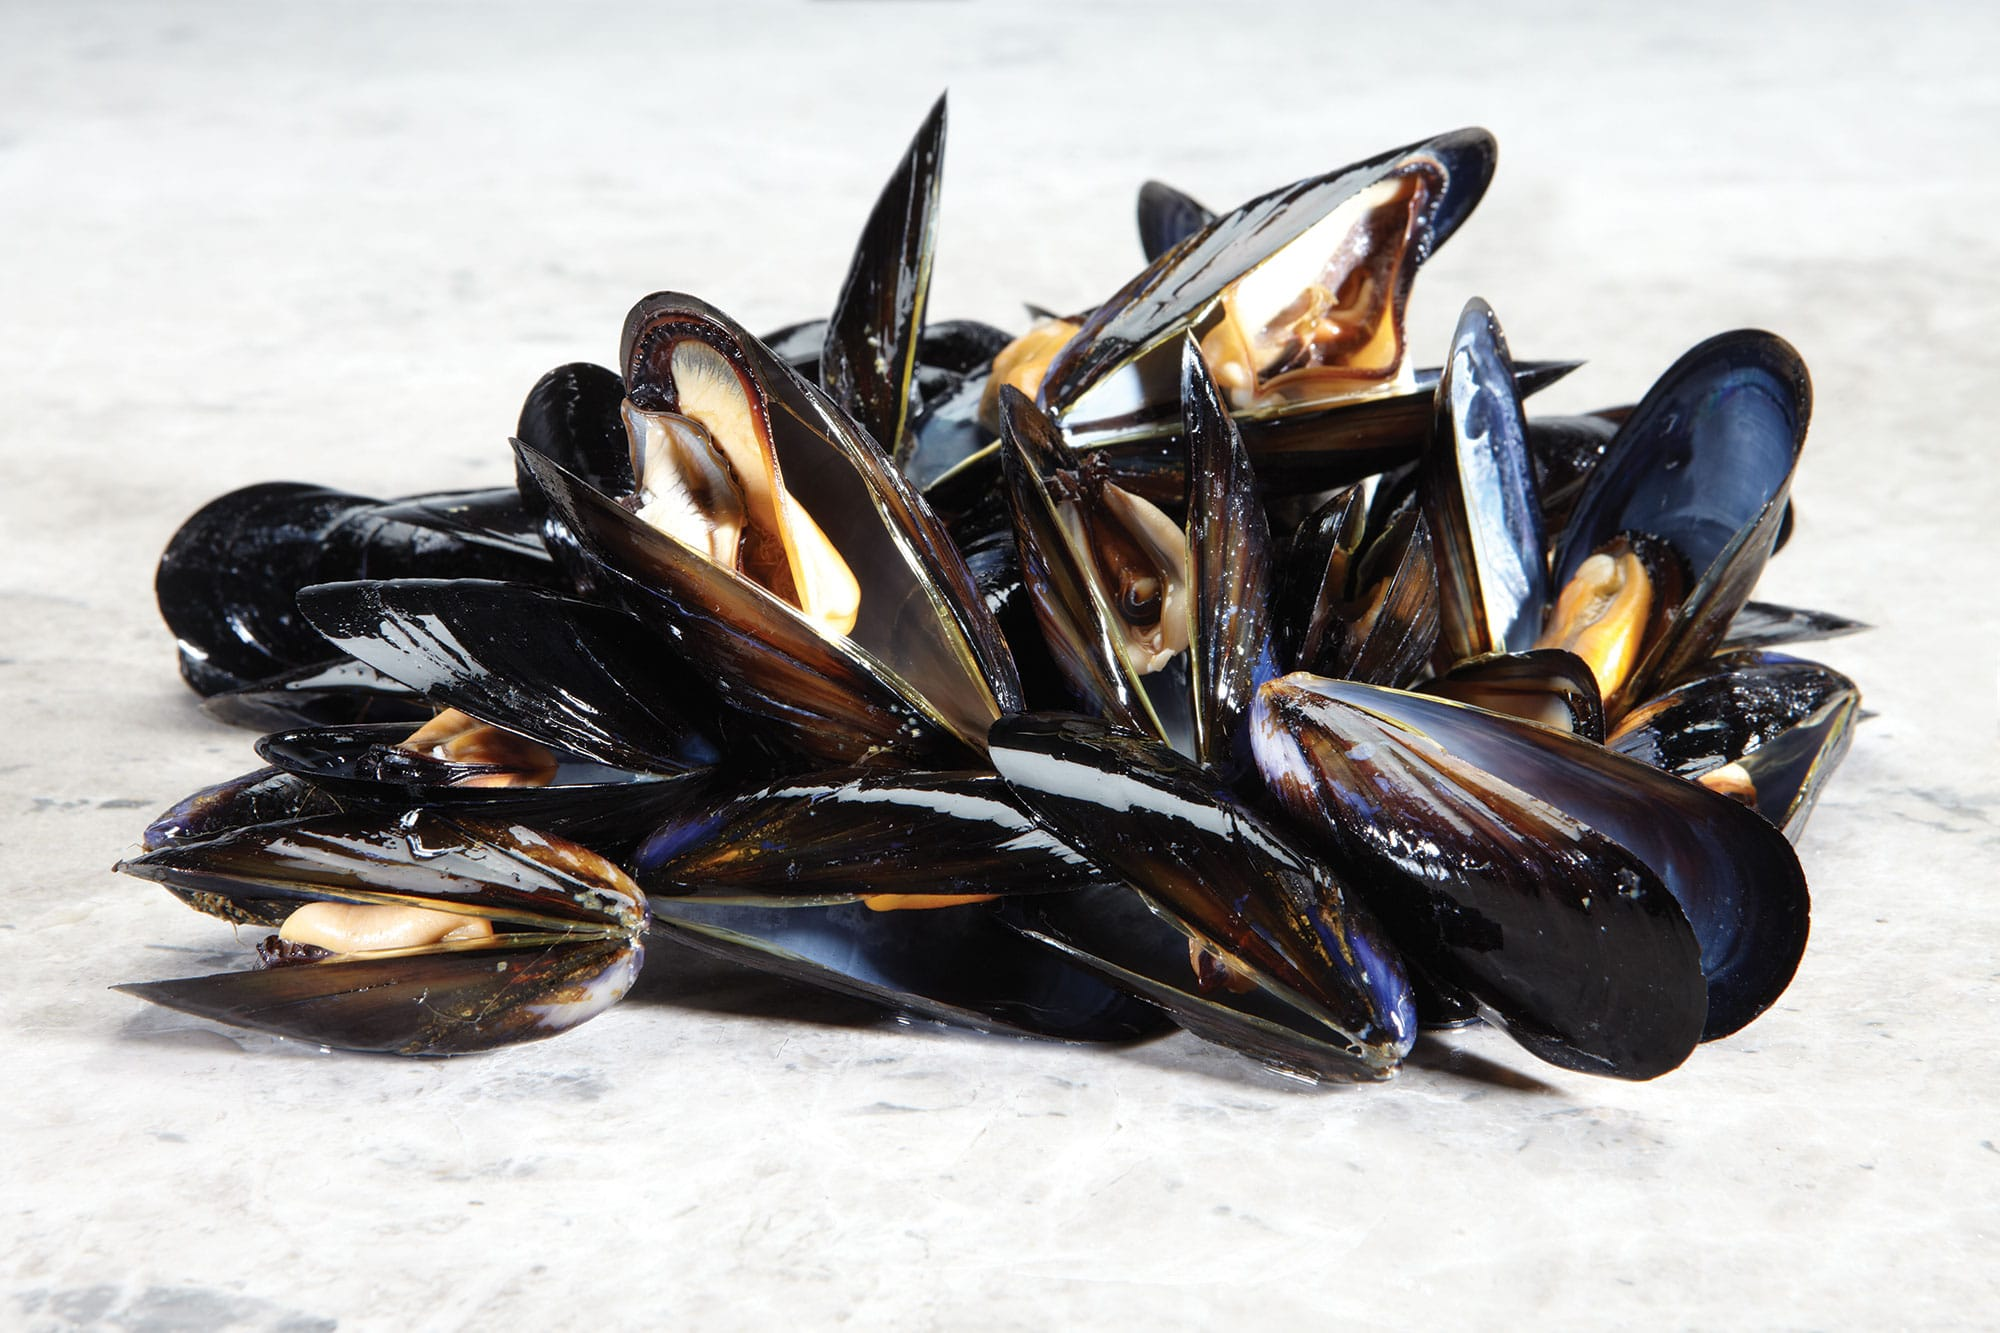 mussels-cockles-clams-welks-7